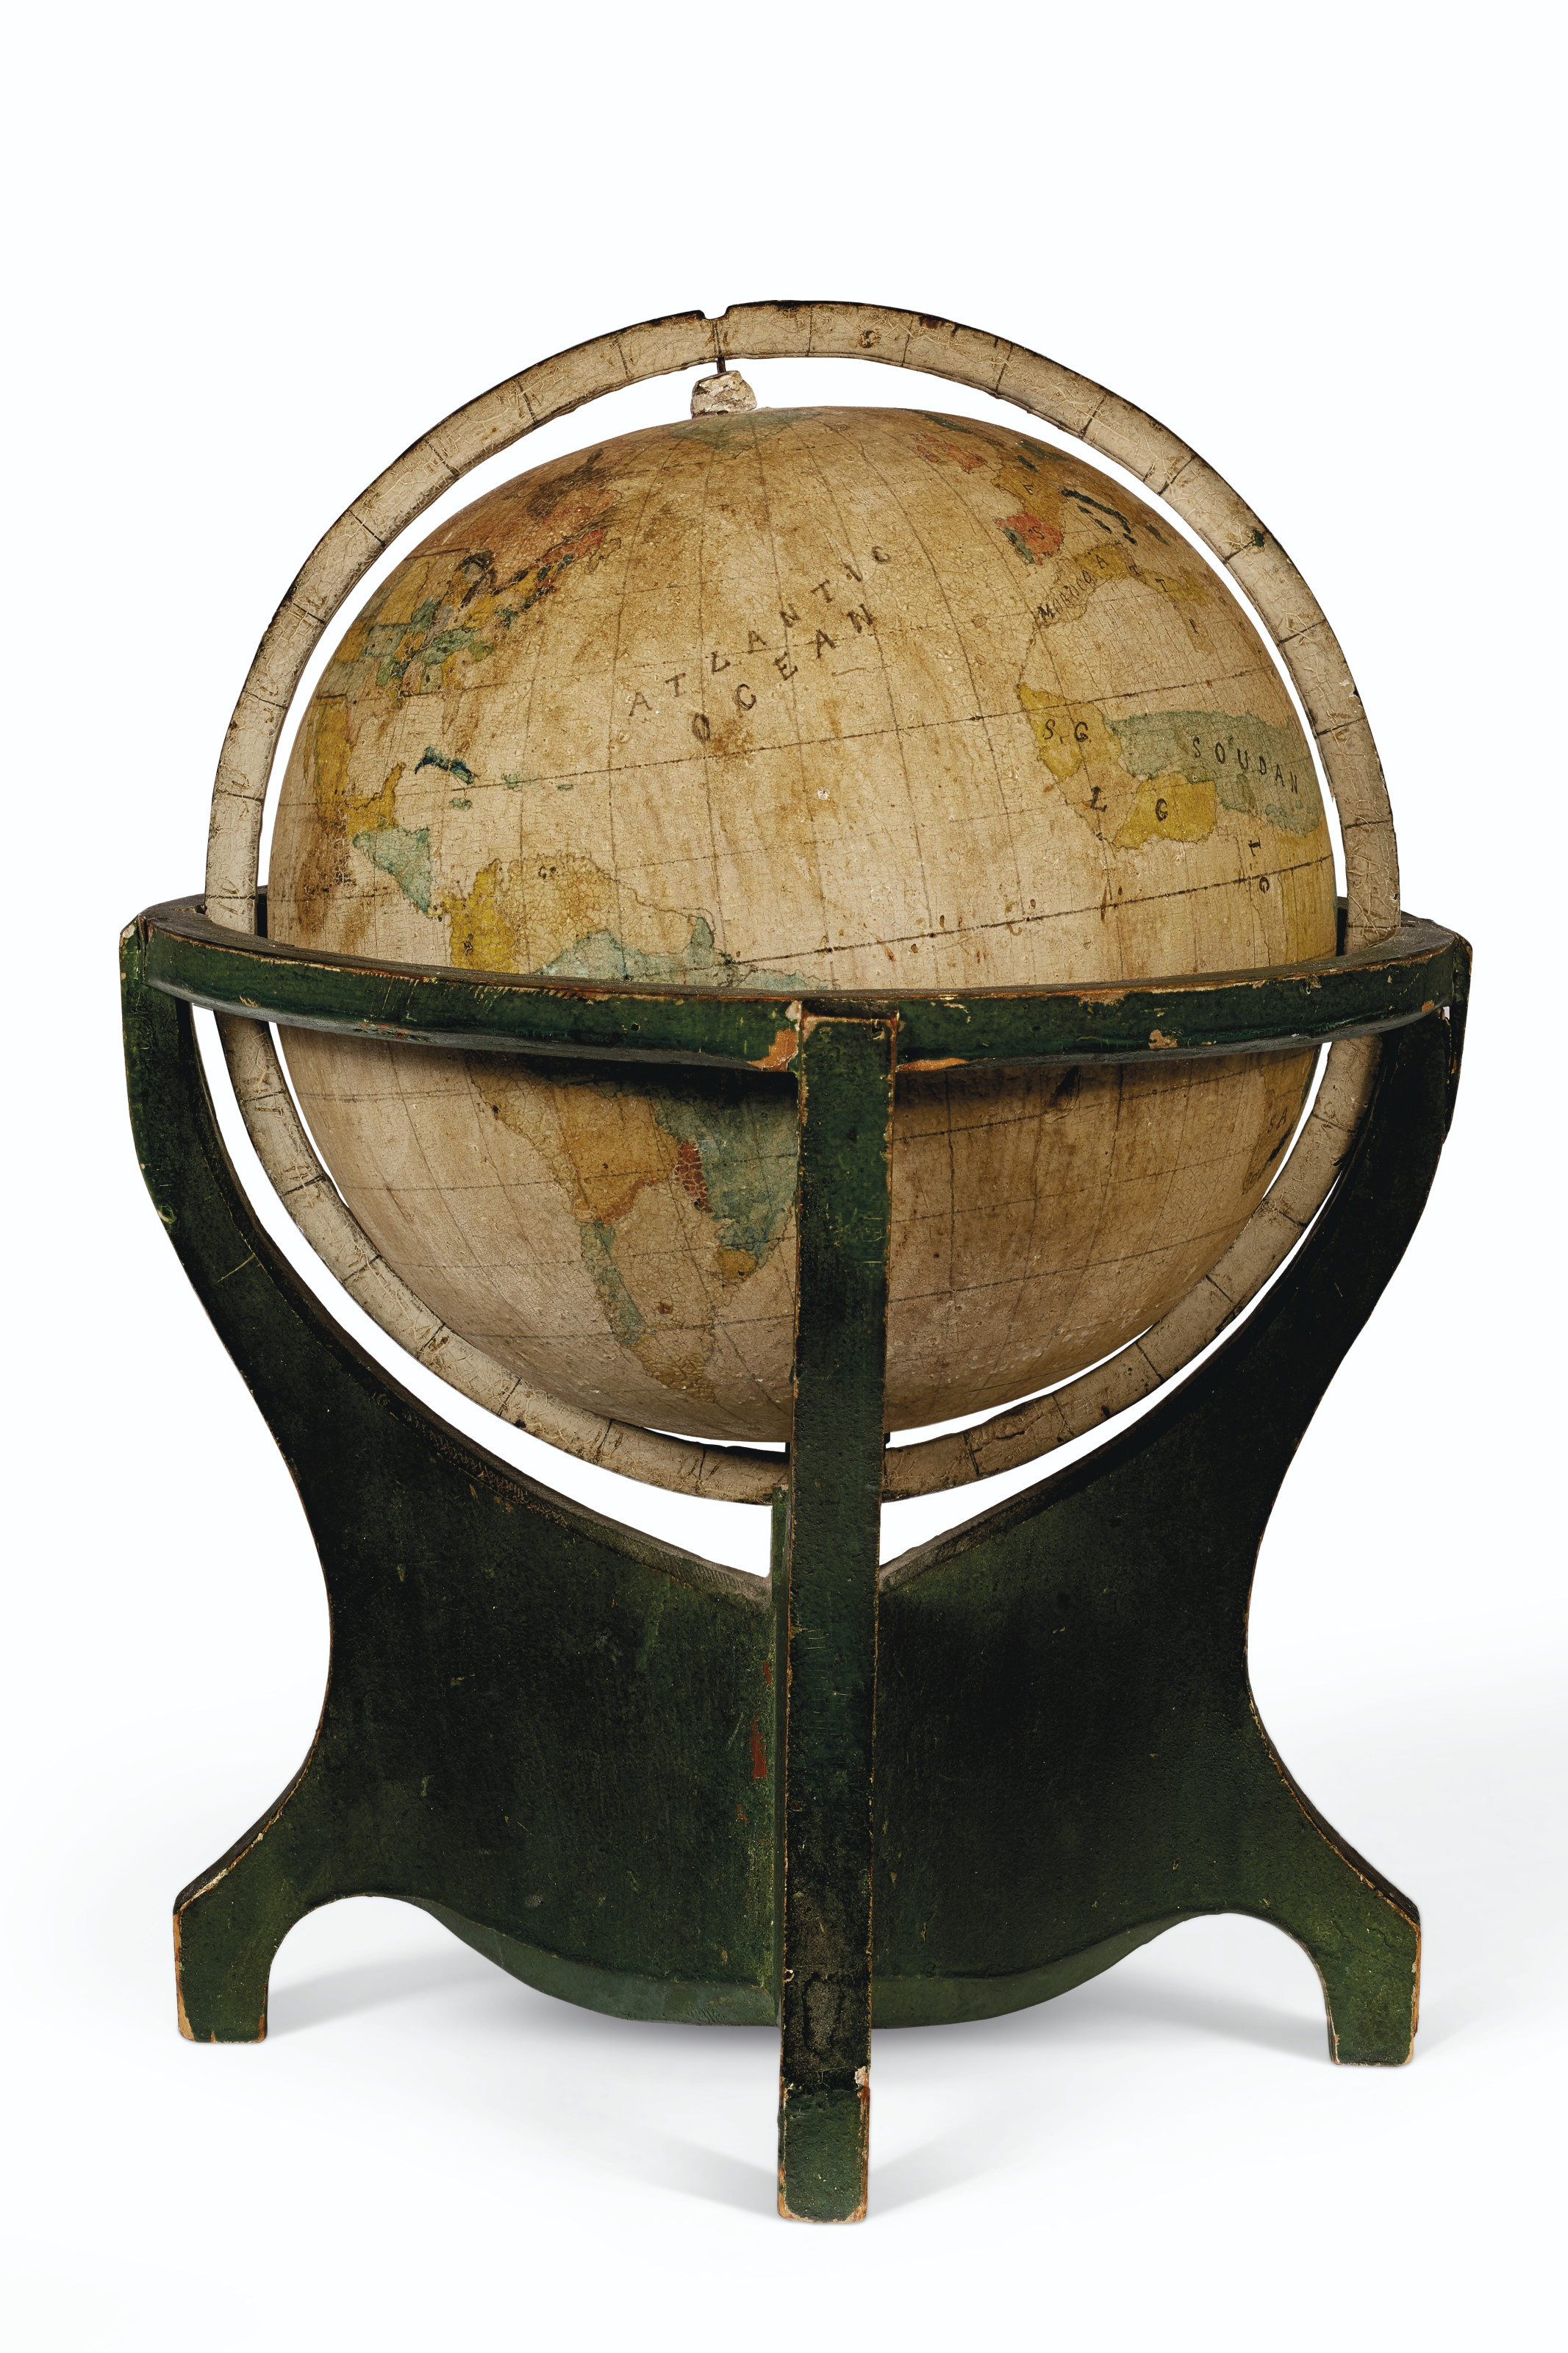 A SMALL PAINTED METAL GLOBE IN WOOD STAND